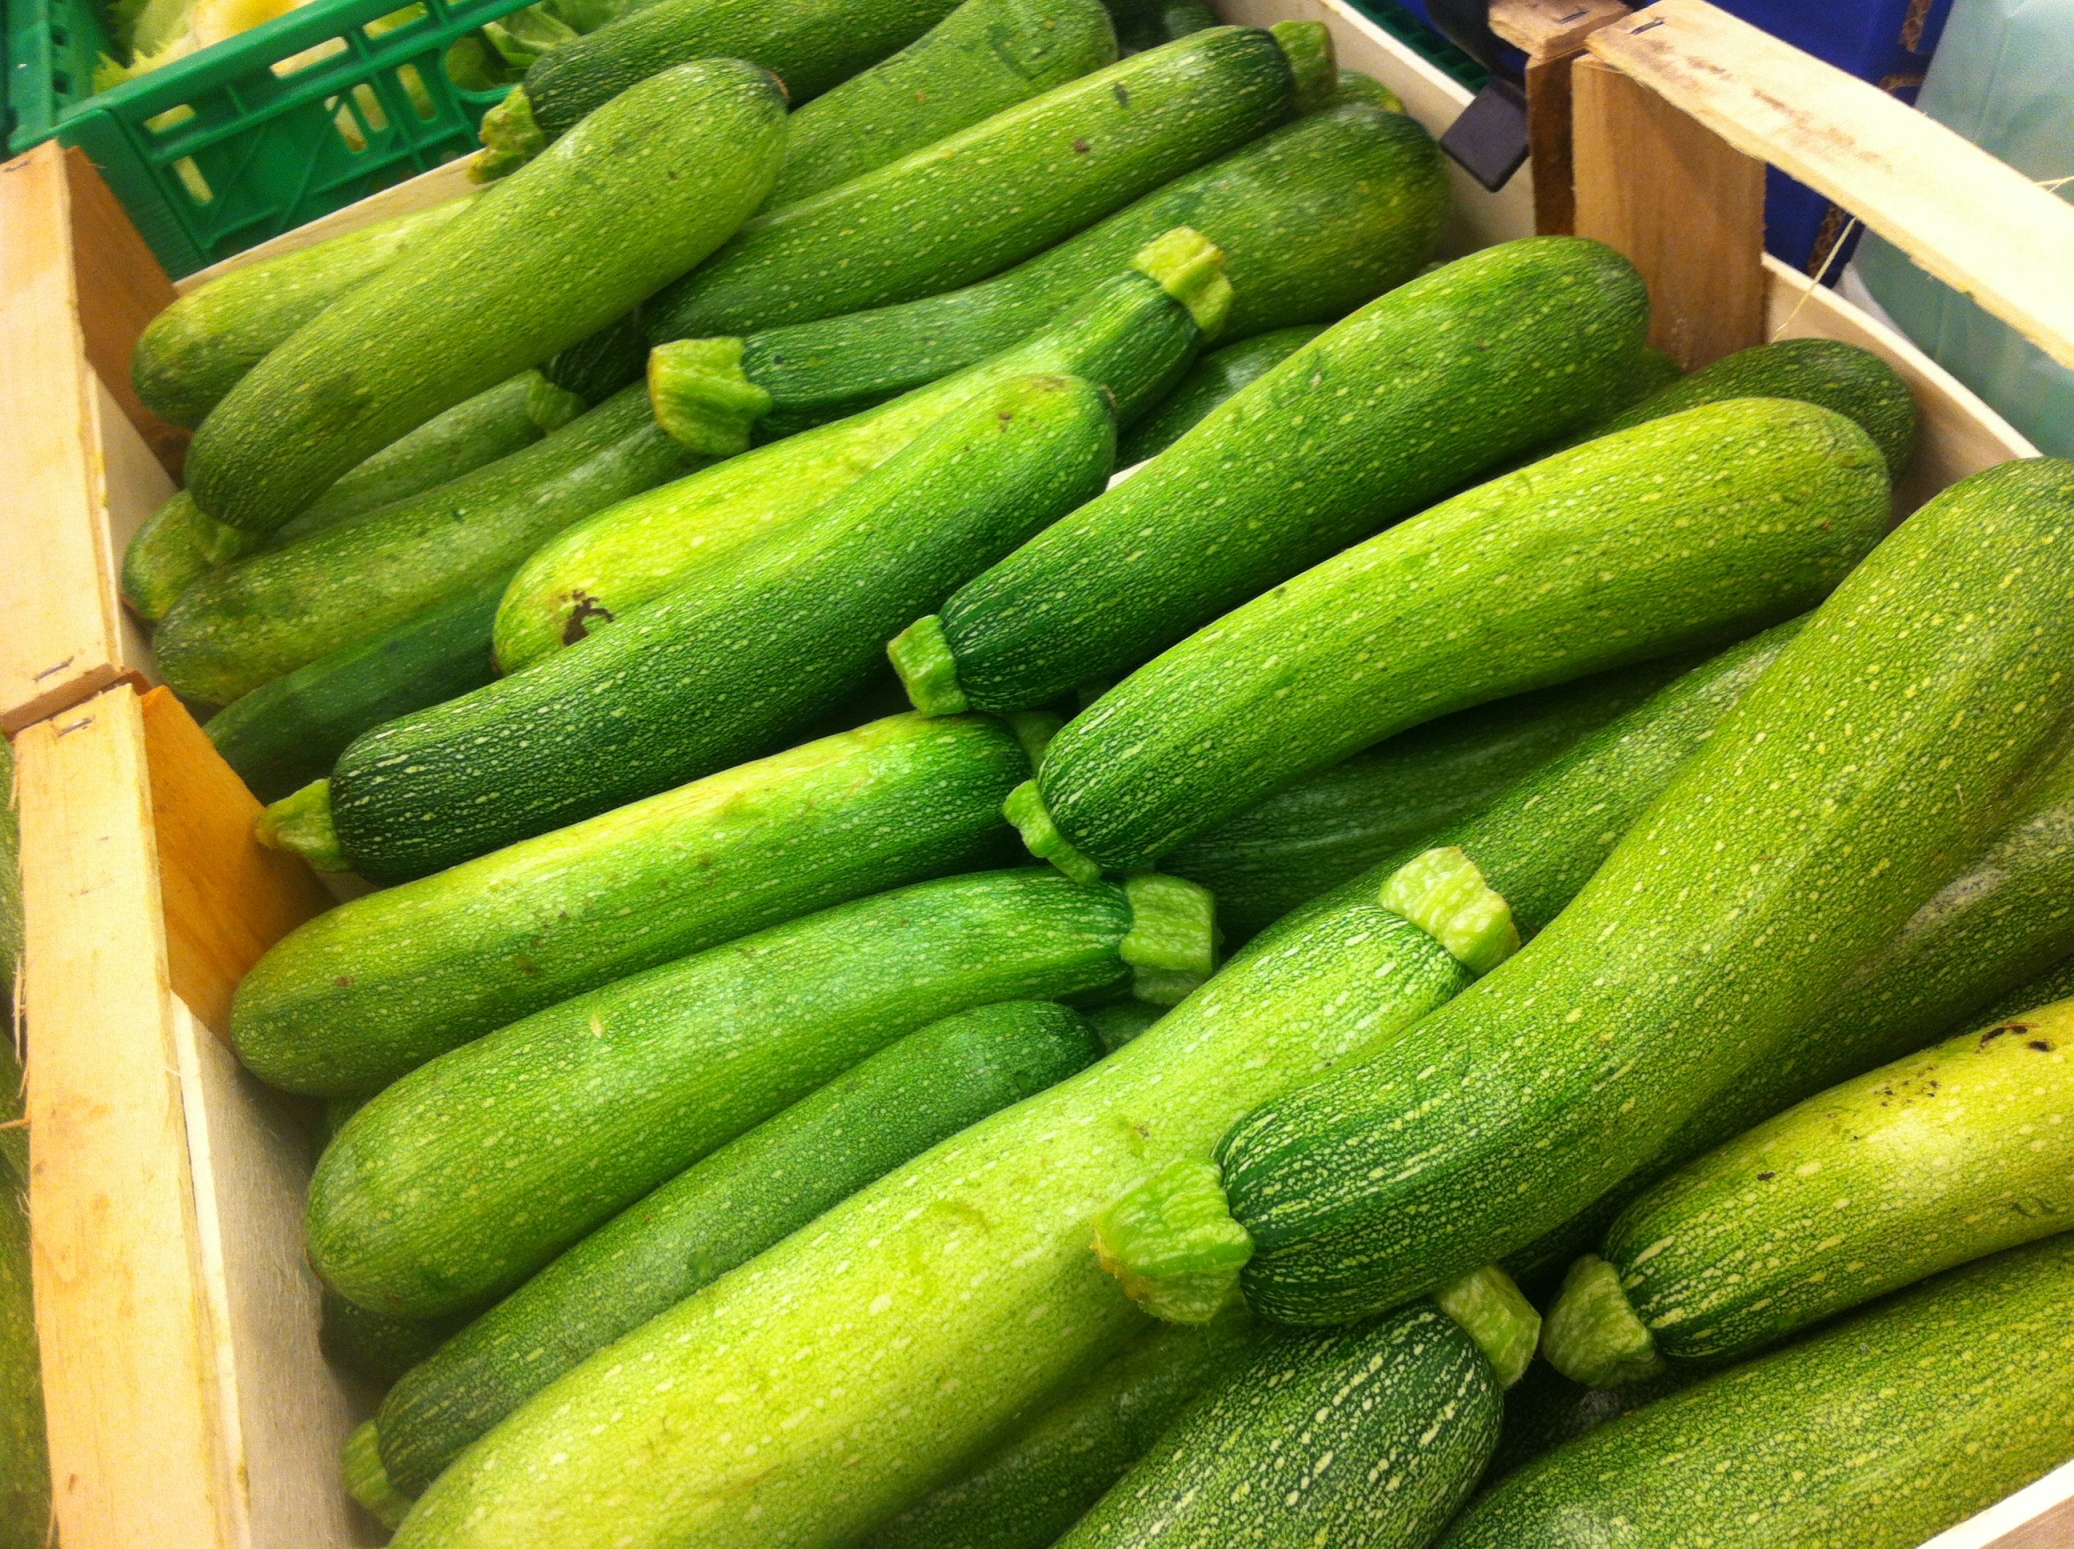 Zucchine, Italian staple food. It's in most dishes and grows everywhere.